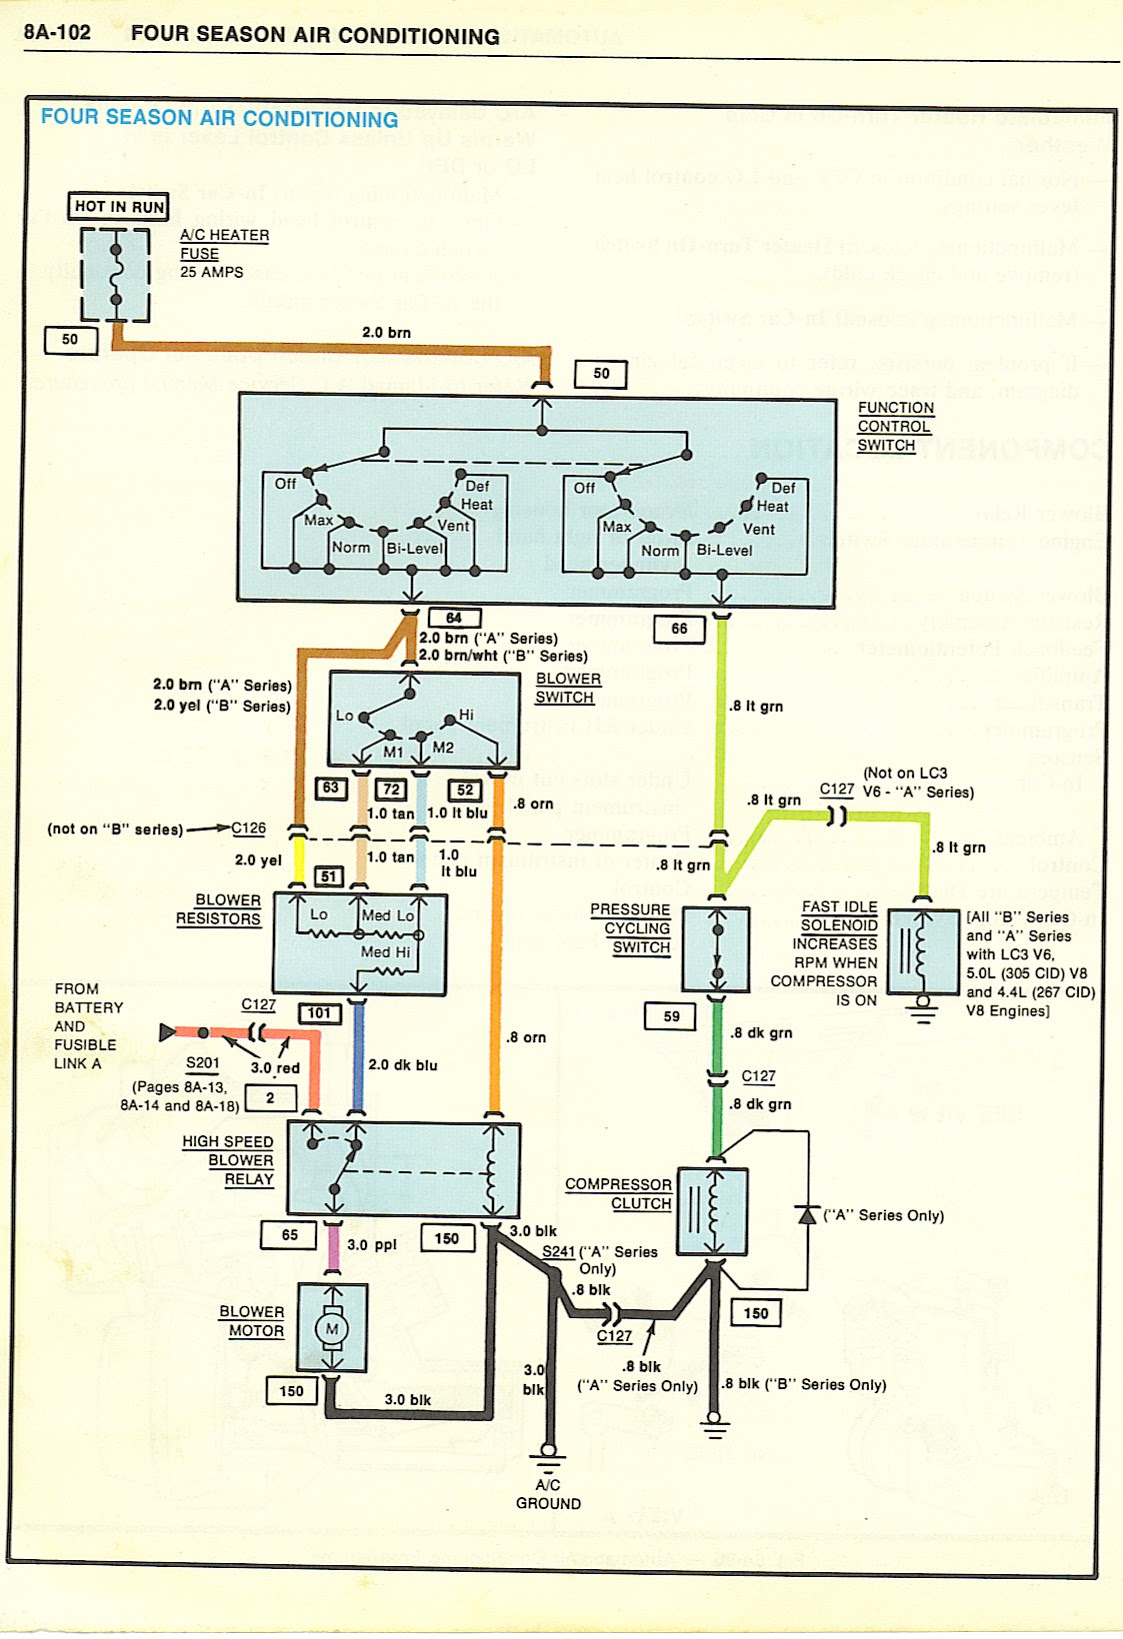 1968 Cadillac Air Conditioner Wiring Diagram Reverse Light Wiring 1969 Barracuda Gravely Losdol2 Jeanjaures37 Fr